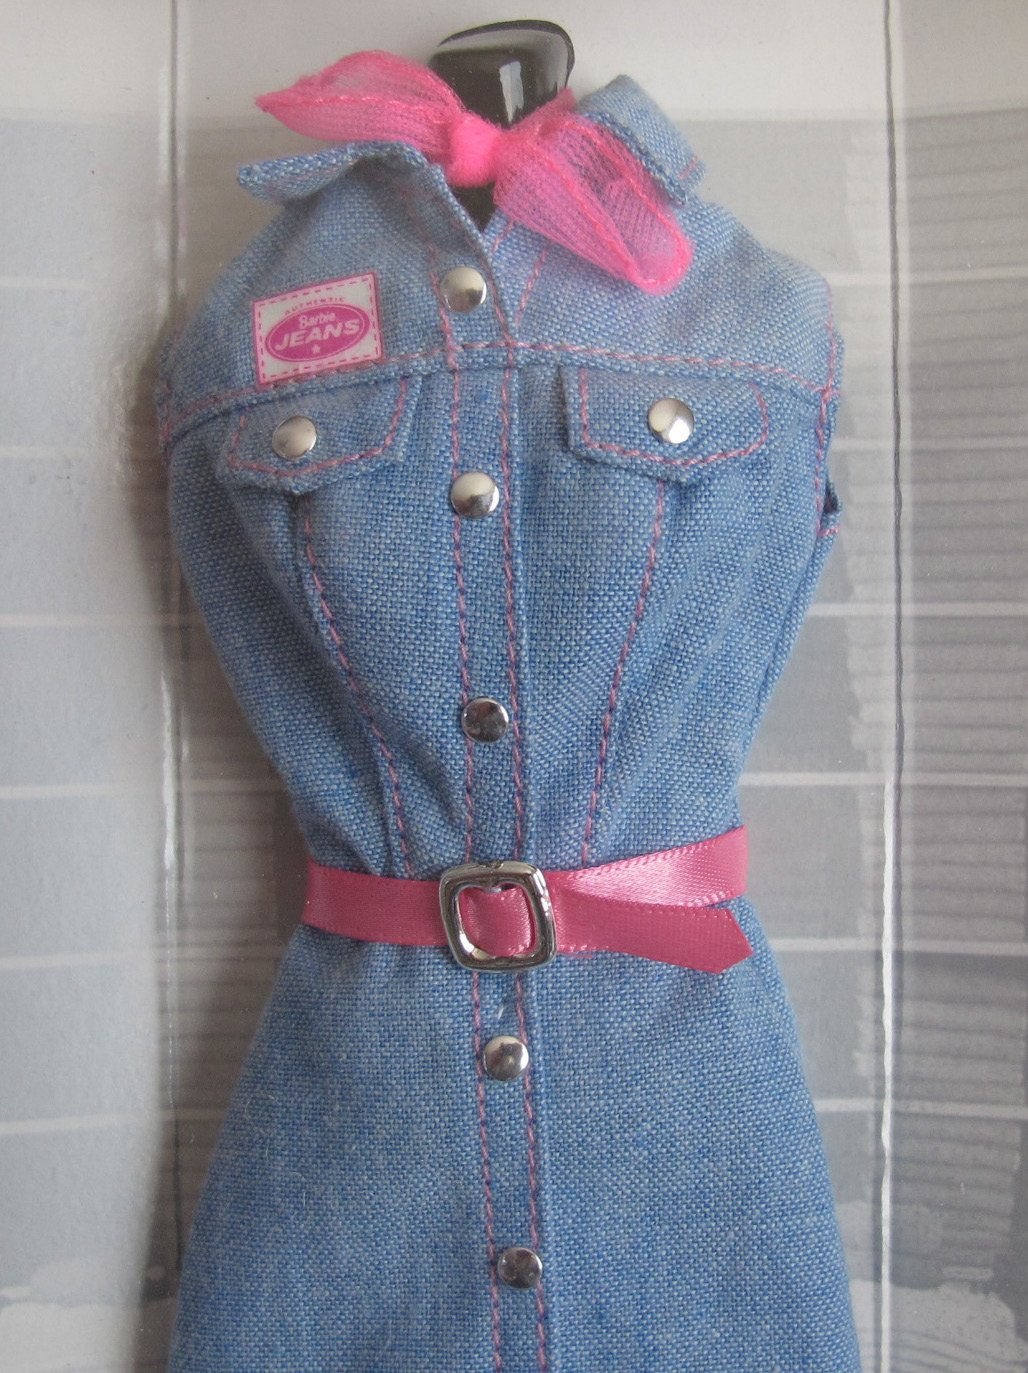 4a62e1c535 Amazon.com  BARBIE Fashion Avenue AUTHENTIC JEANS FASHIONS Collection w  Long JEAN DRESS   More (1997)  Toys   Games